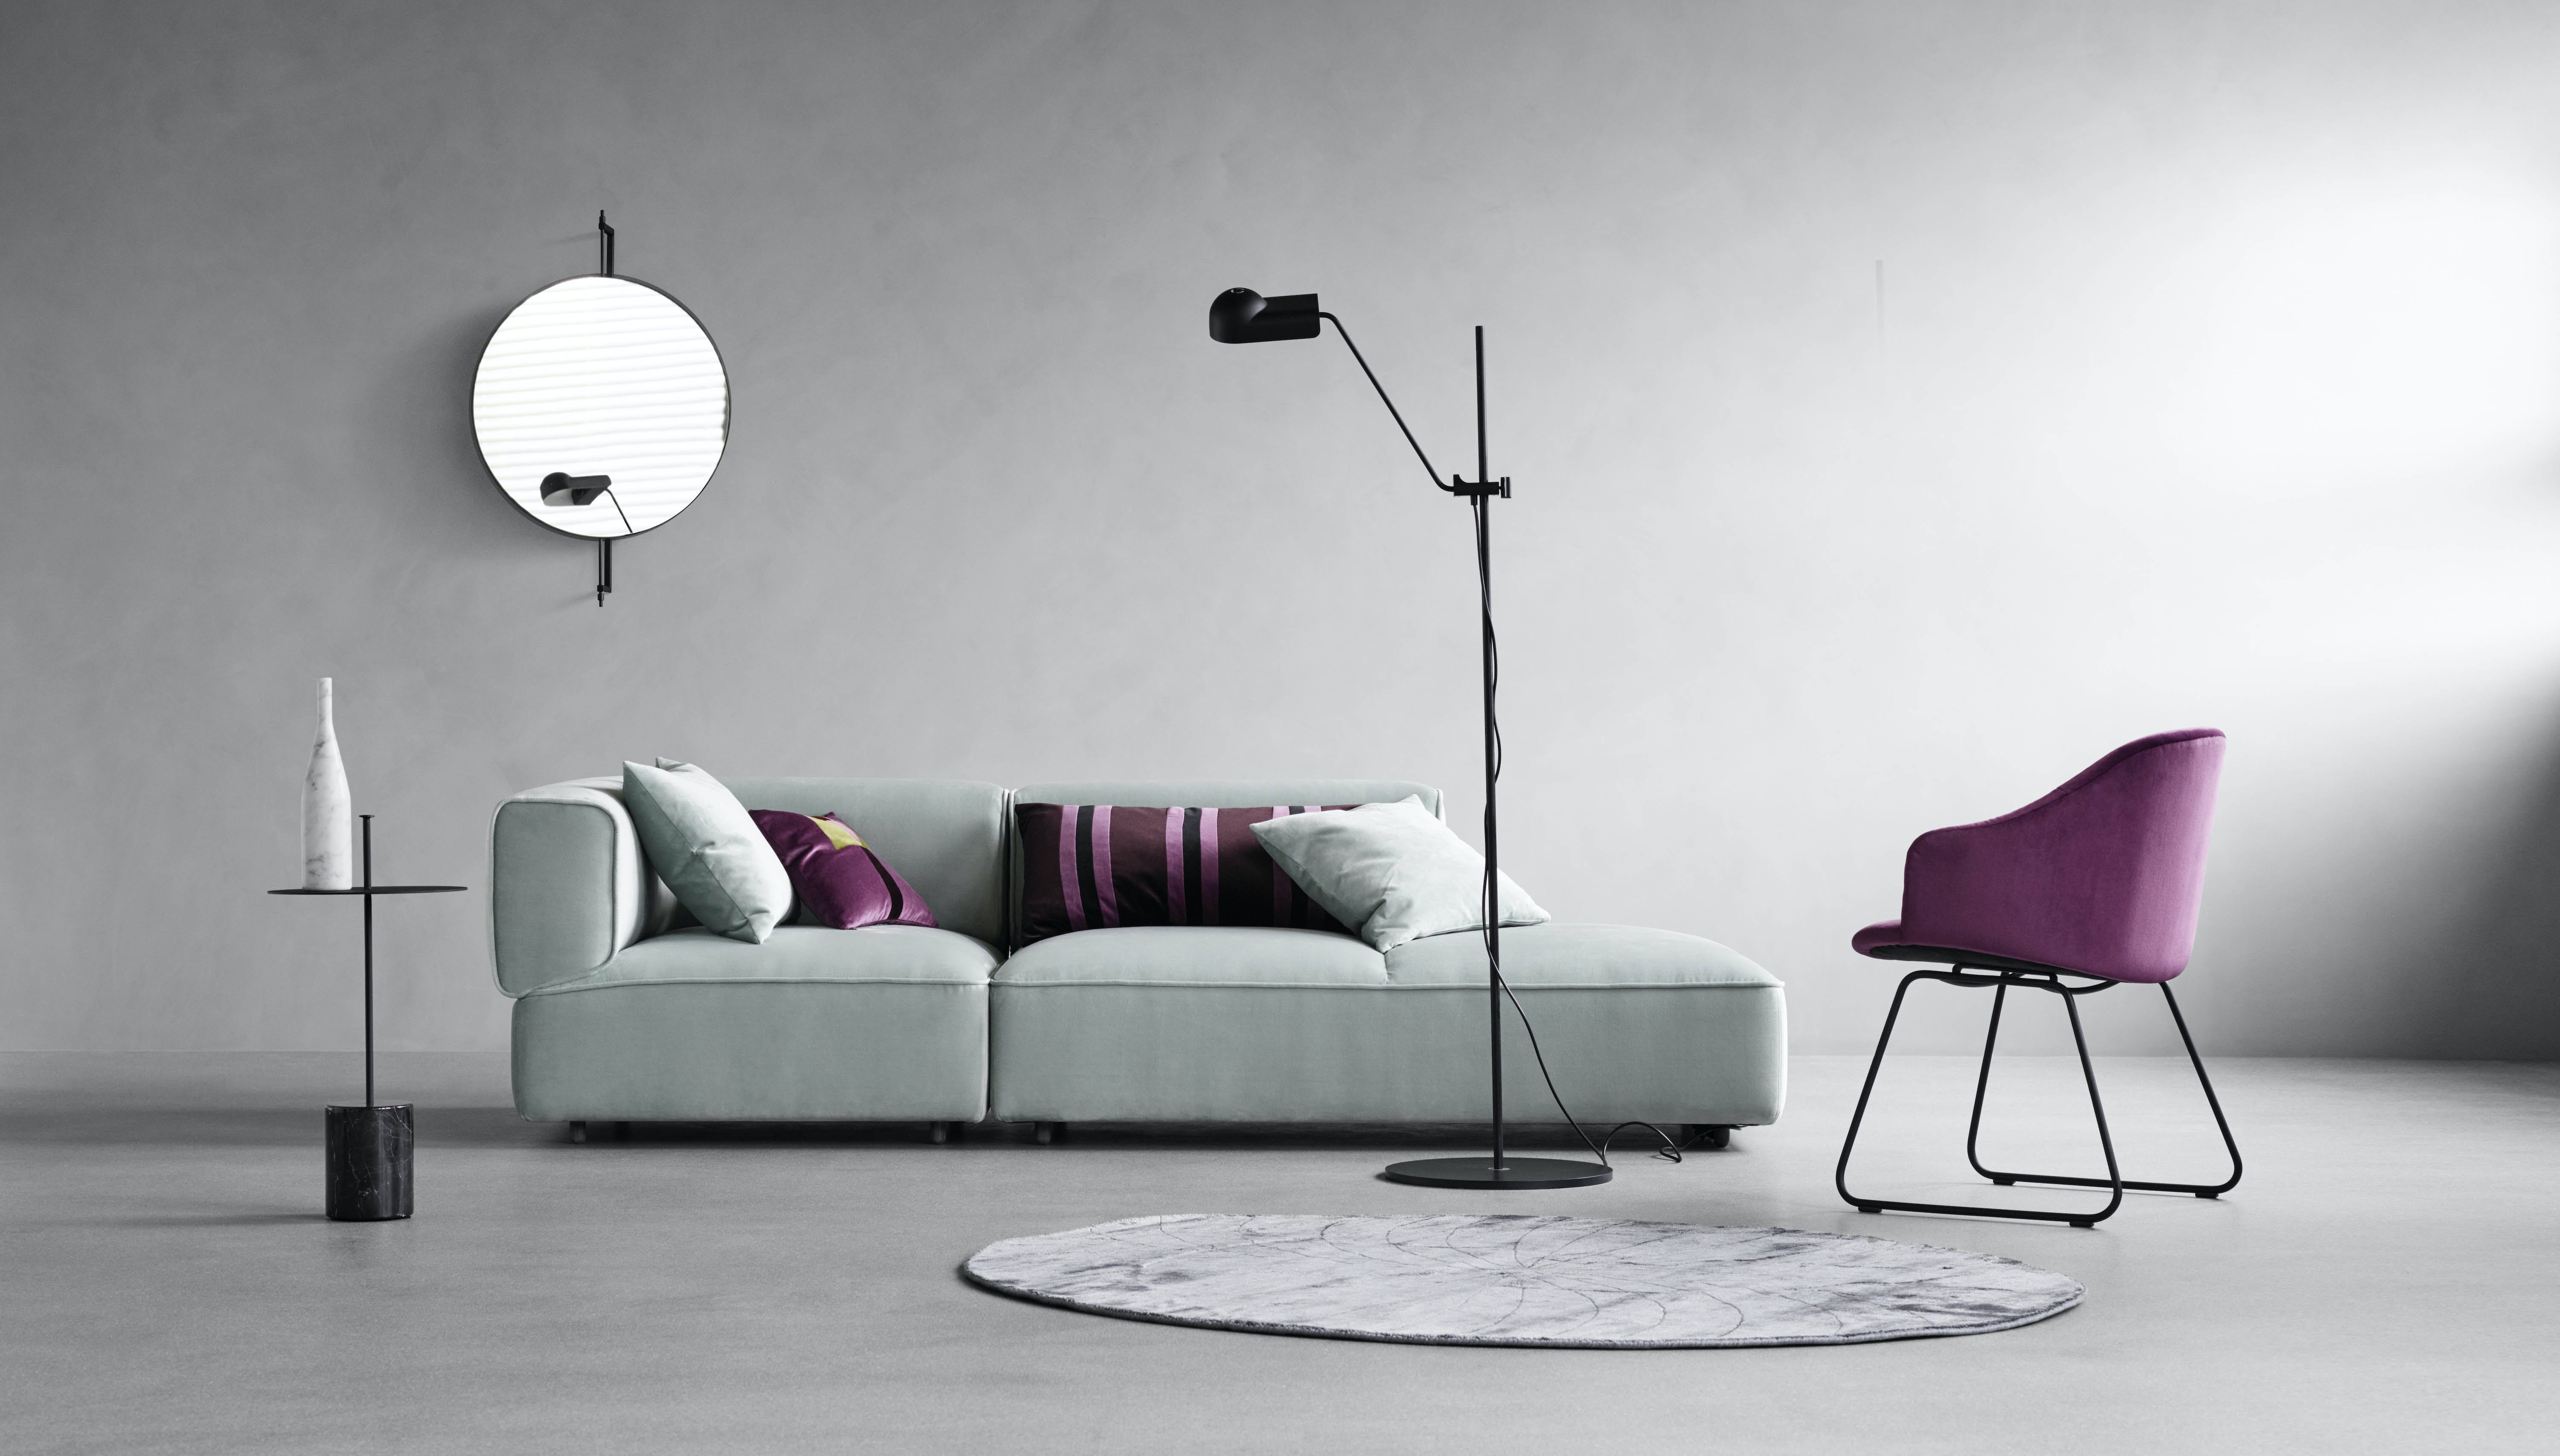 Poff-Sofa-by-WON-at-Haute-Living